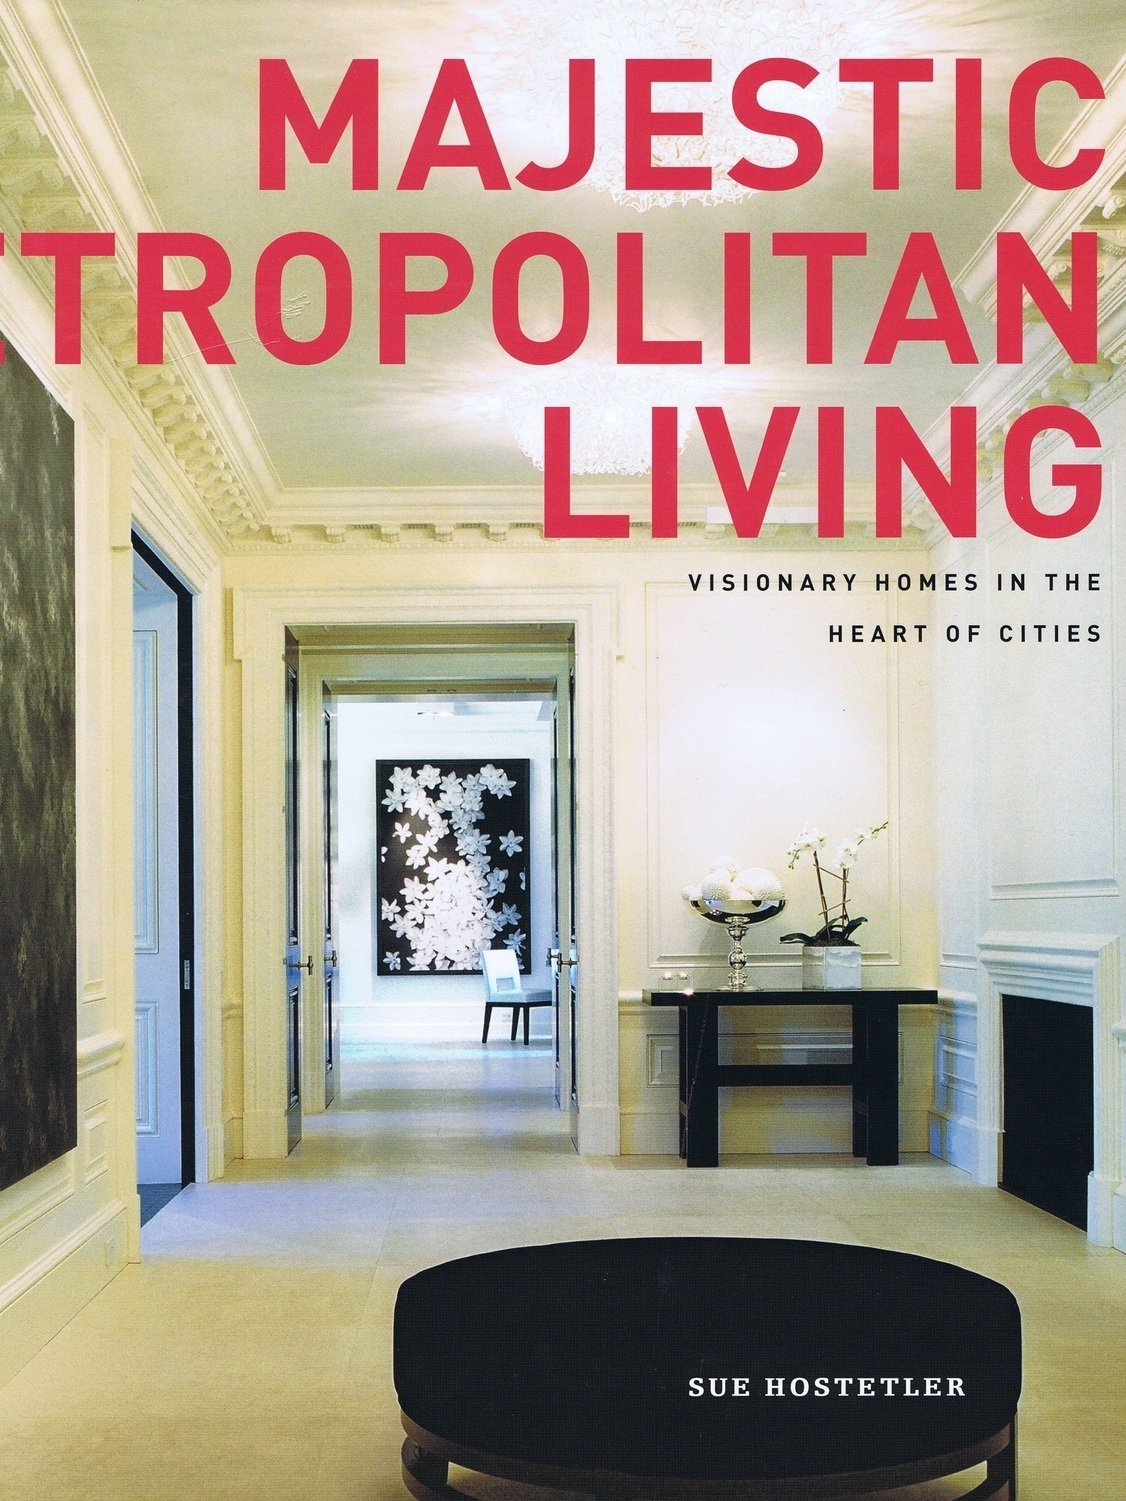 Majestic Metropolitan Living - Visionary Homes in the Heart of Cities